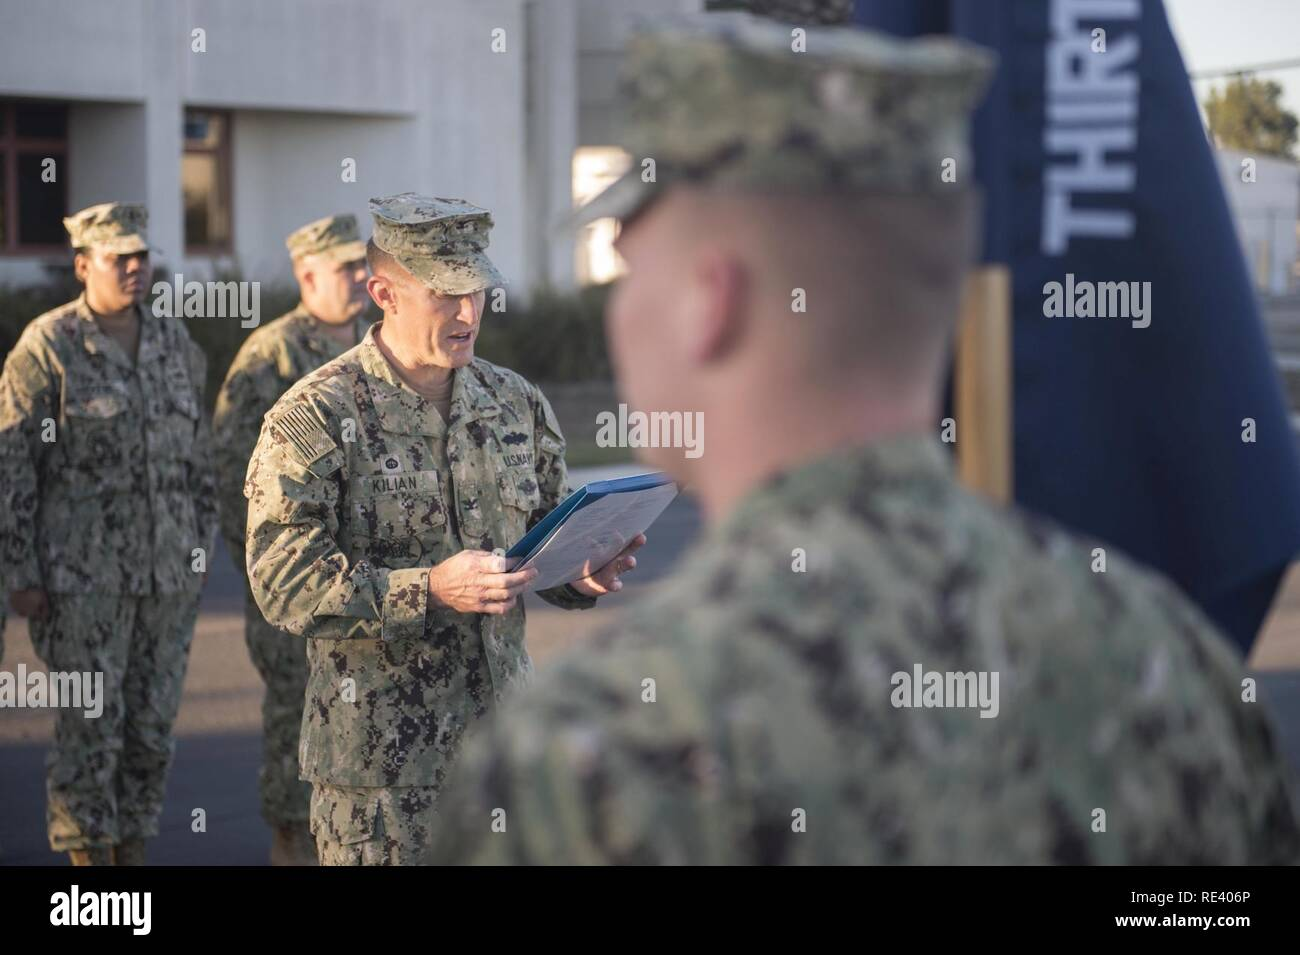 Capt. Jeffrey Kilian, commodore, 30th Naval Construction Regiment, reads a citation awarding the Meritorious Unit Commendation to 30 NCR for the regiment's efforts in providing command and control of Naval Construction Force units from July 2014, to March 2016. - Stock Image